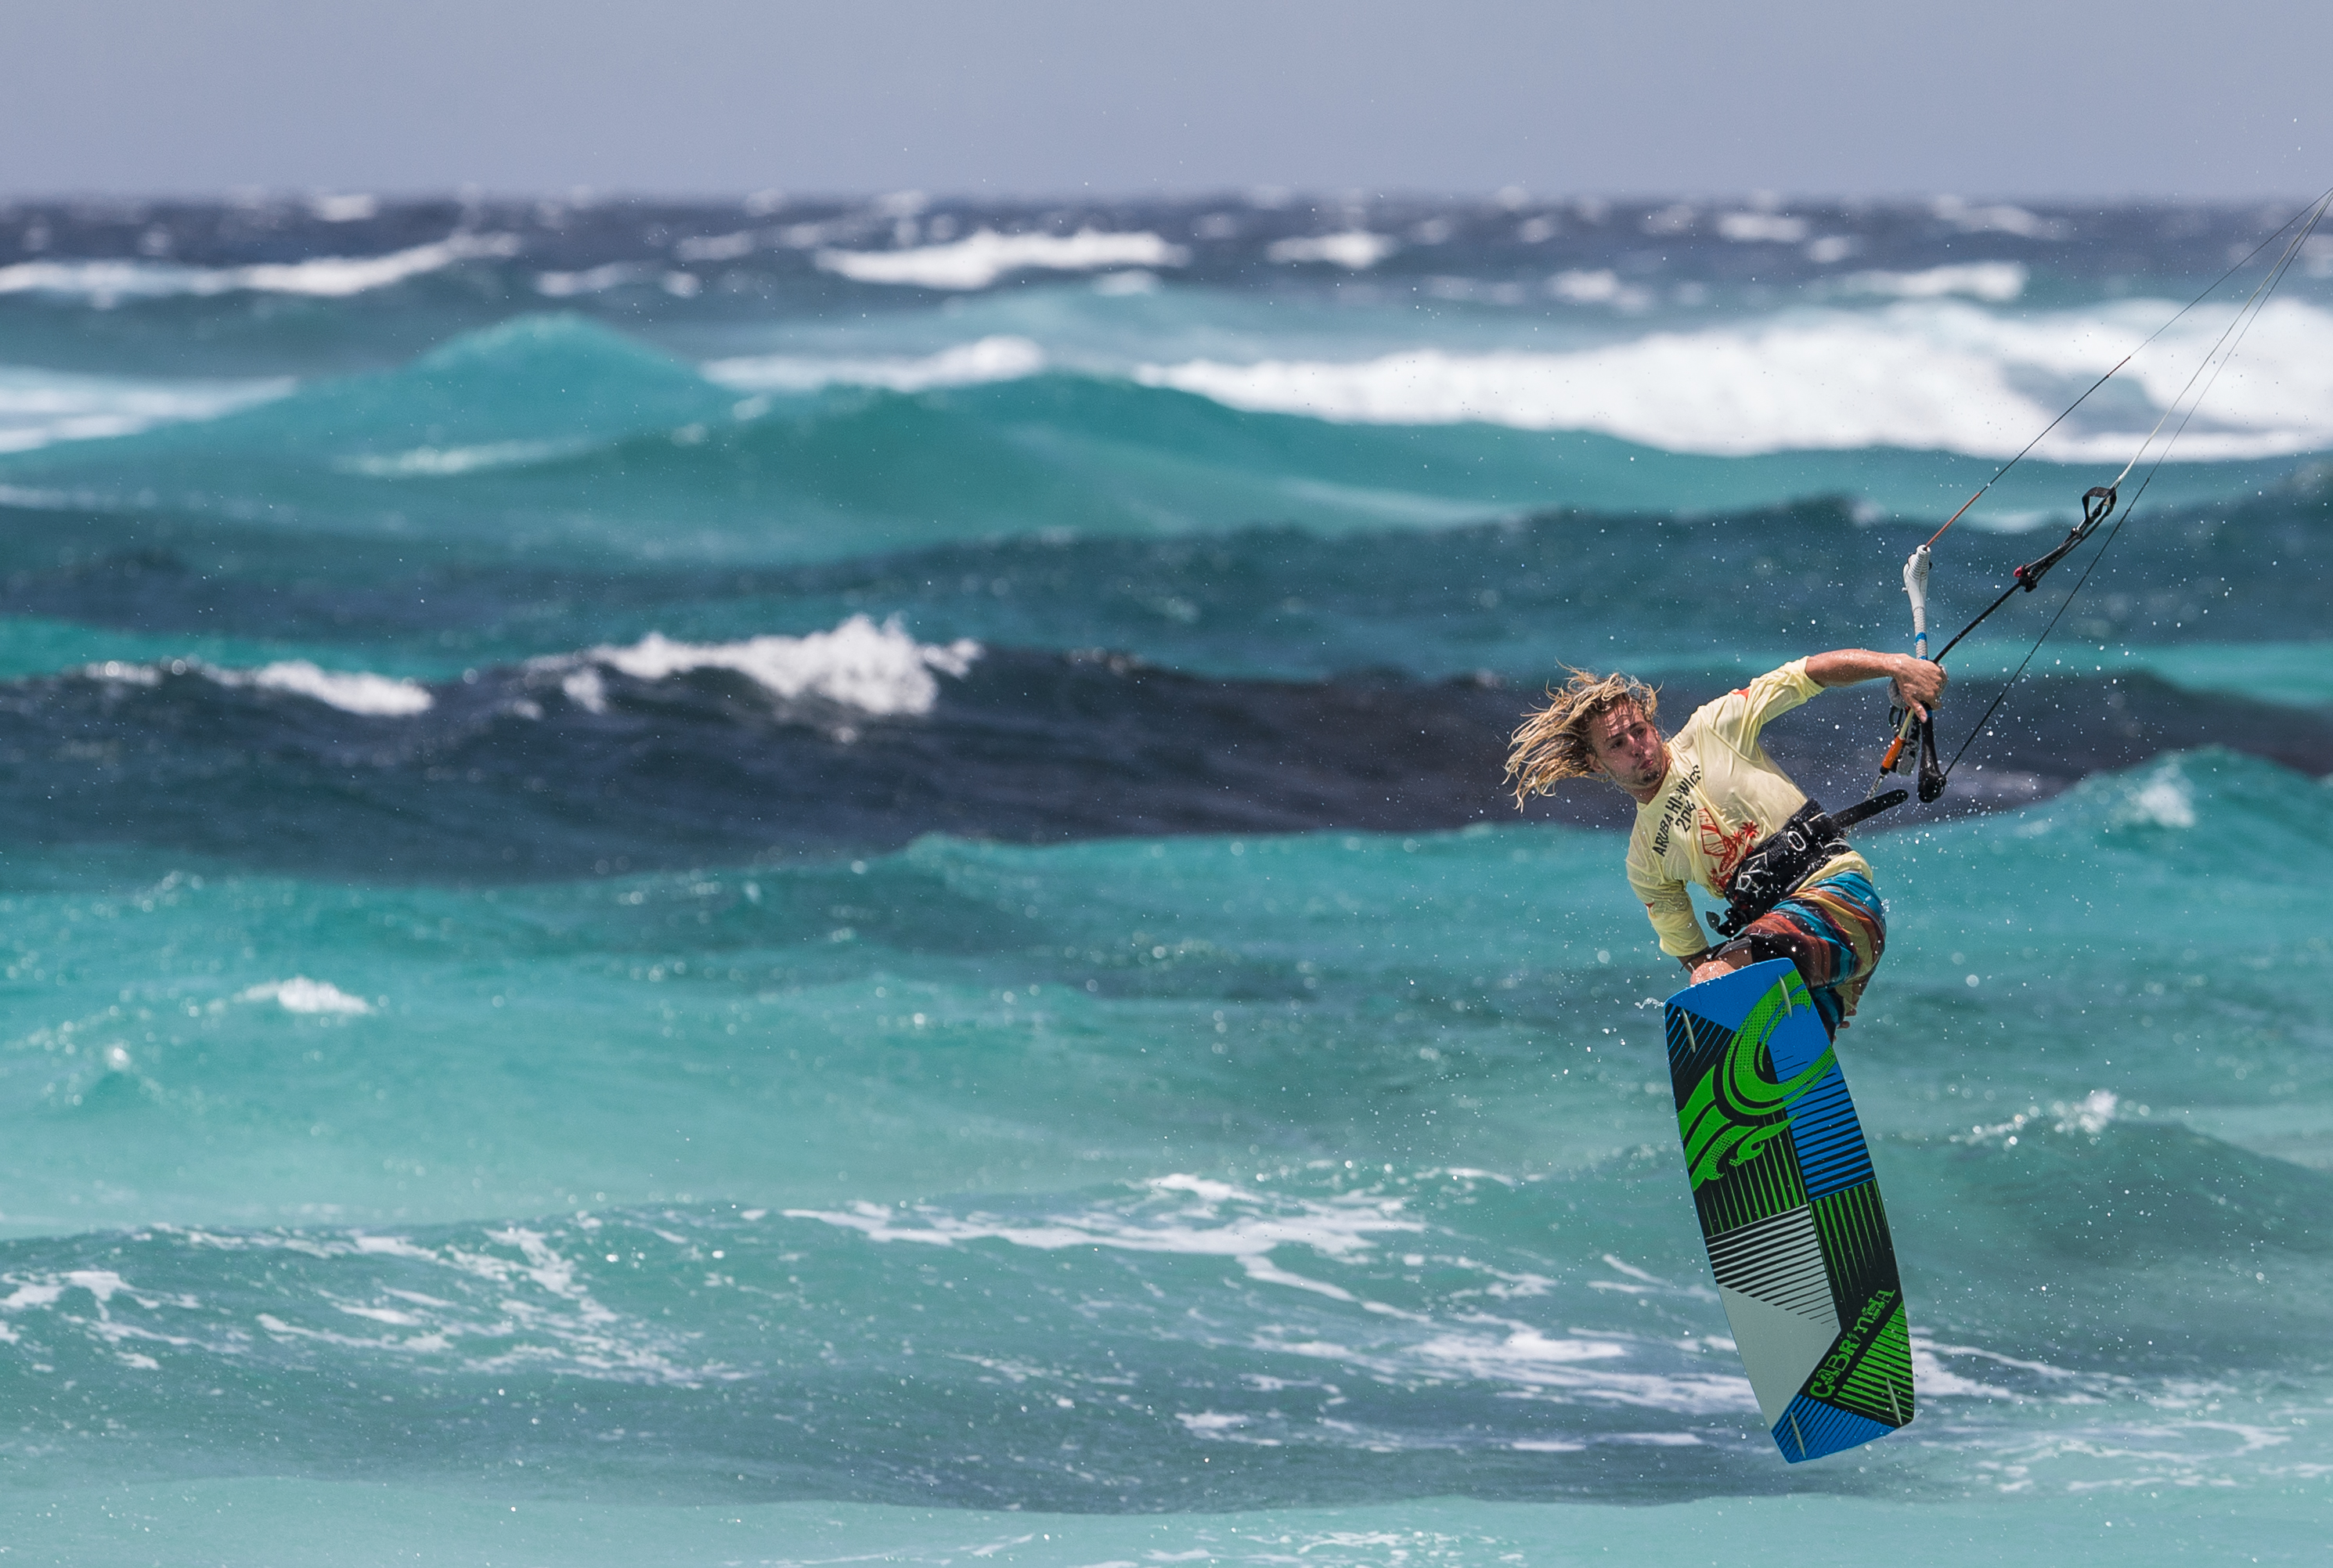 Kitesurfing | Fine Art Photography